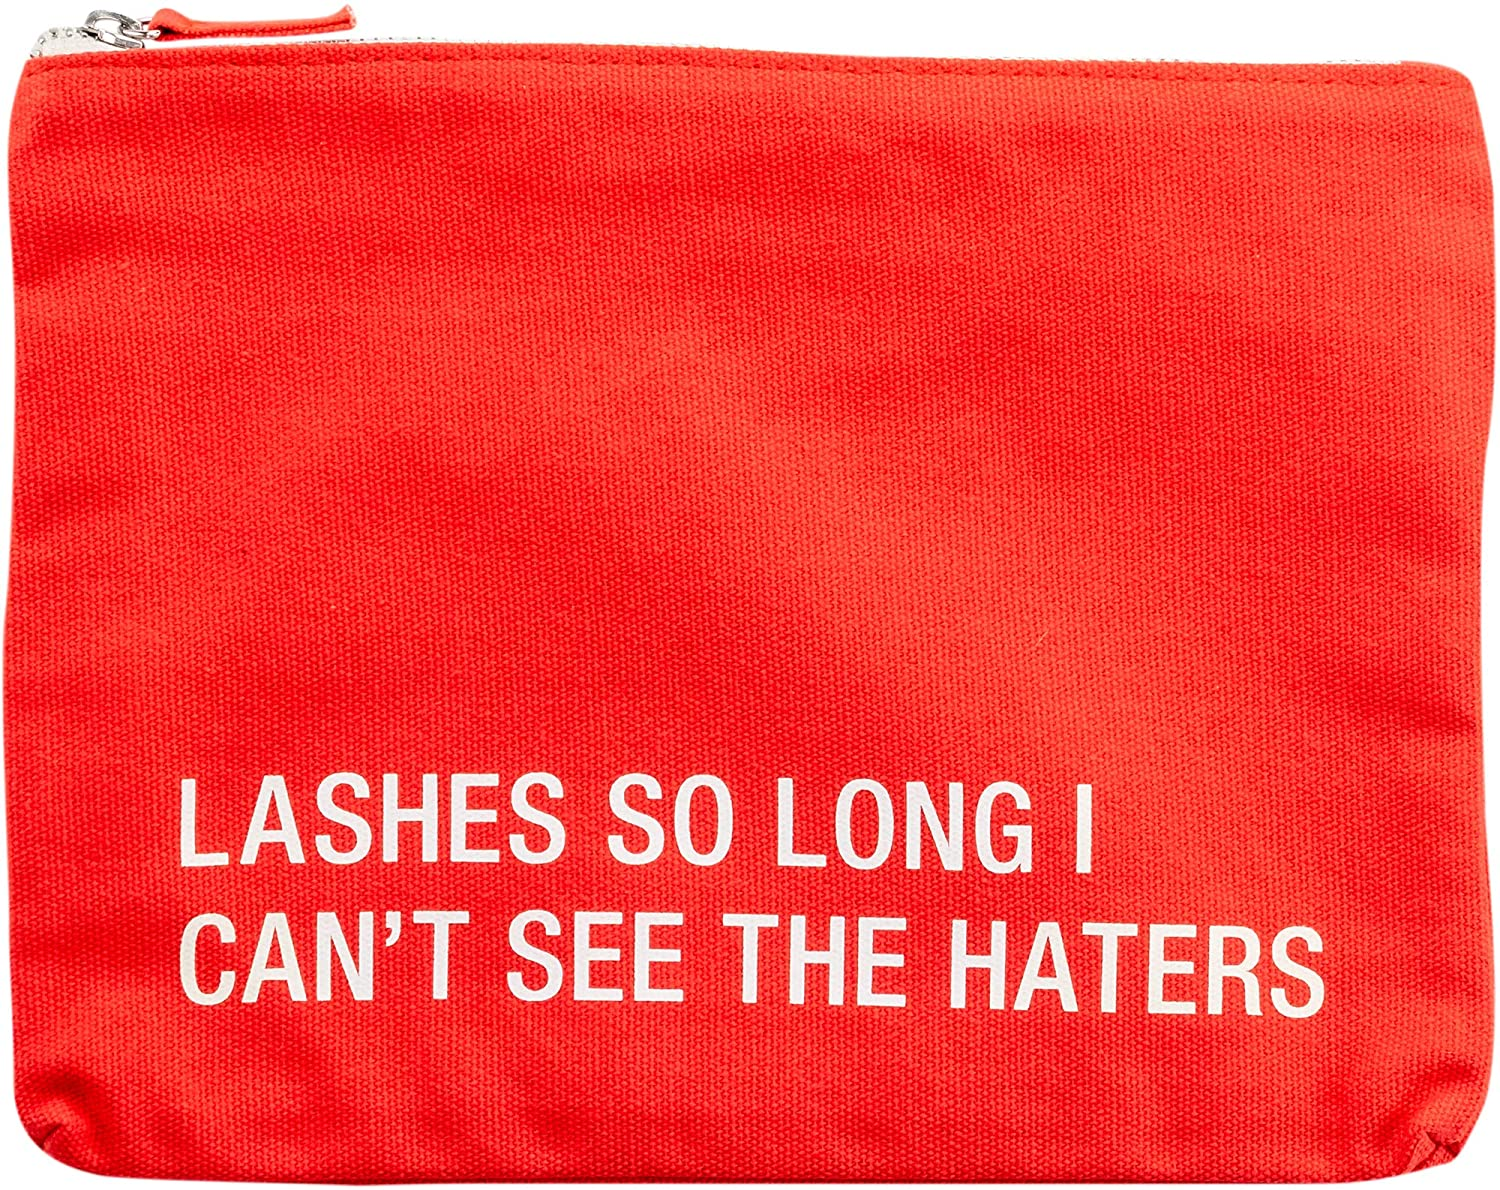 Lashes So Long I Can't See The Haters On Red Cotton Cosmetic Bag